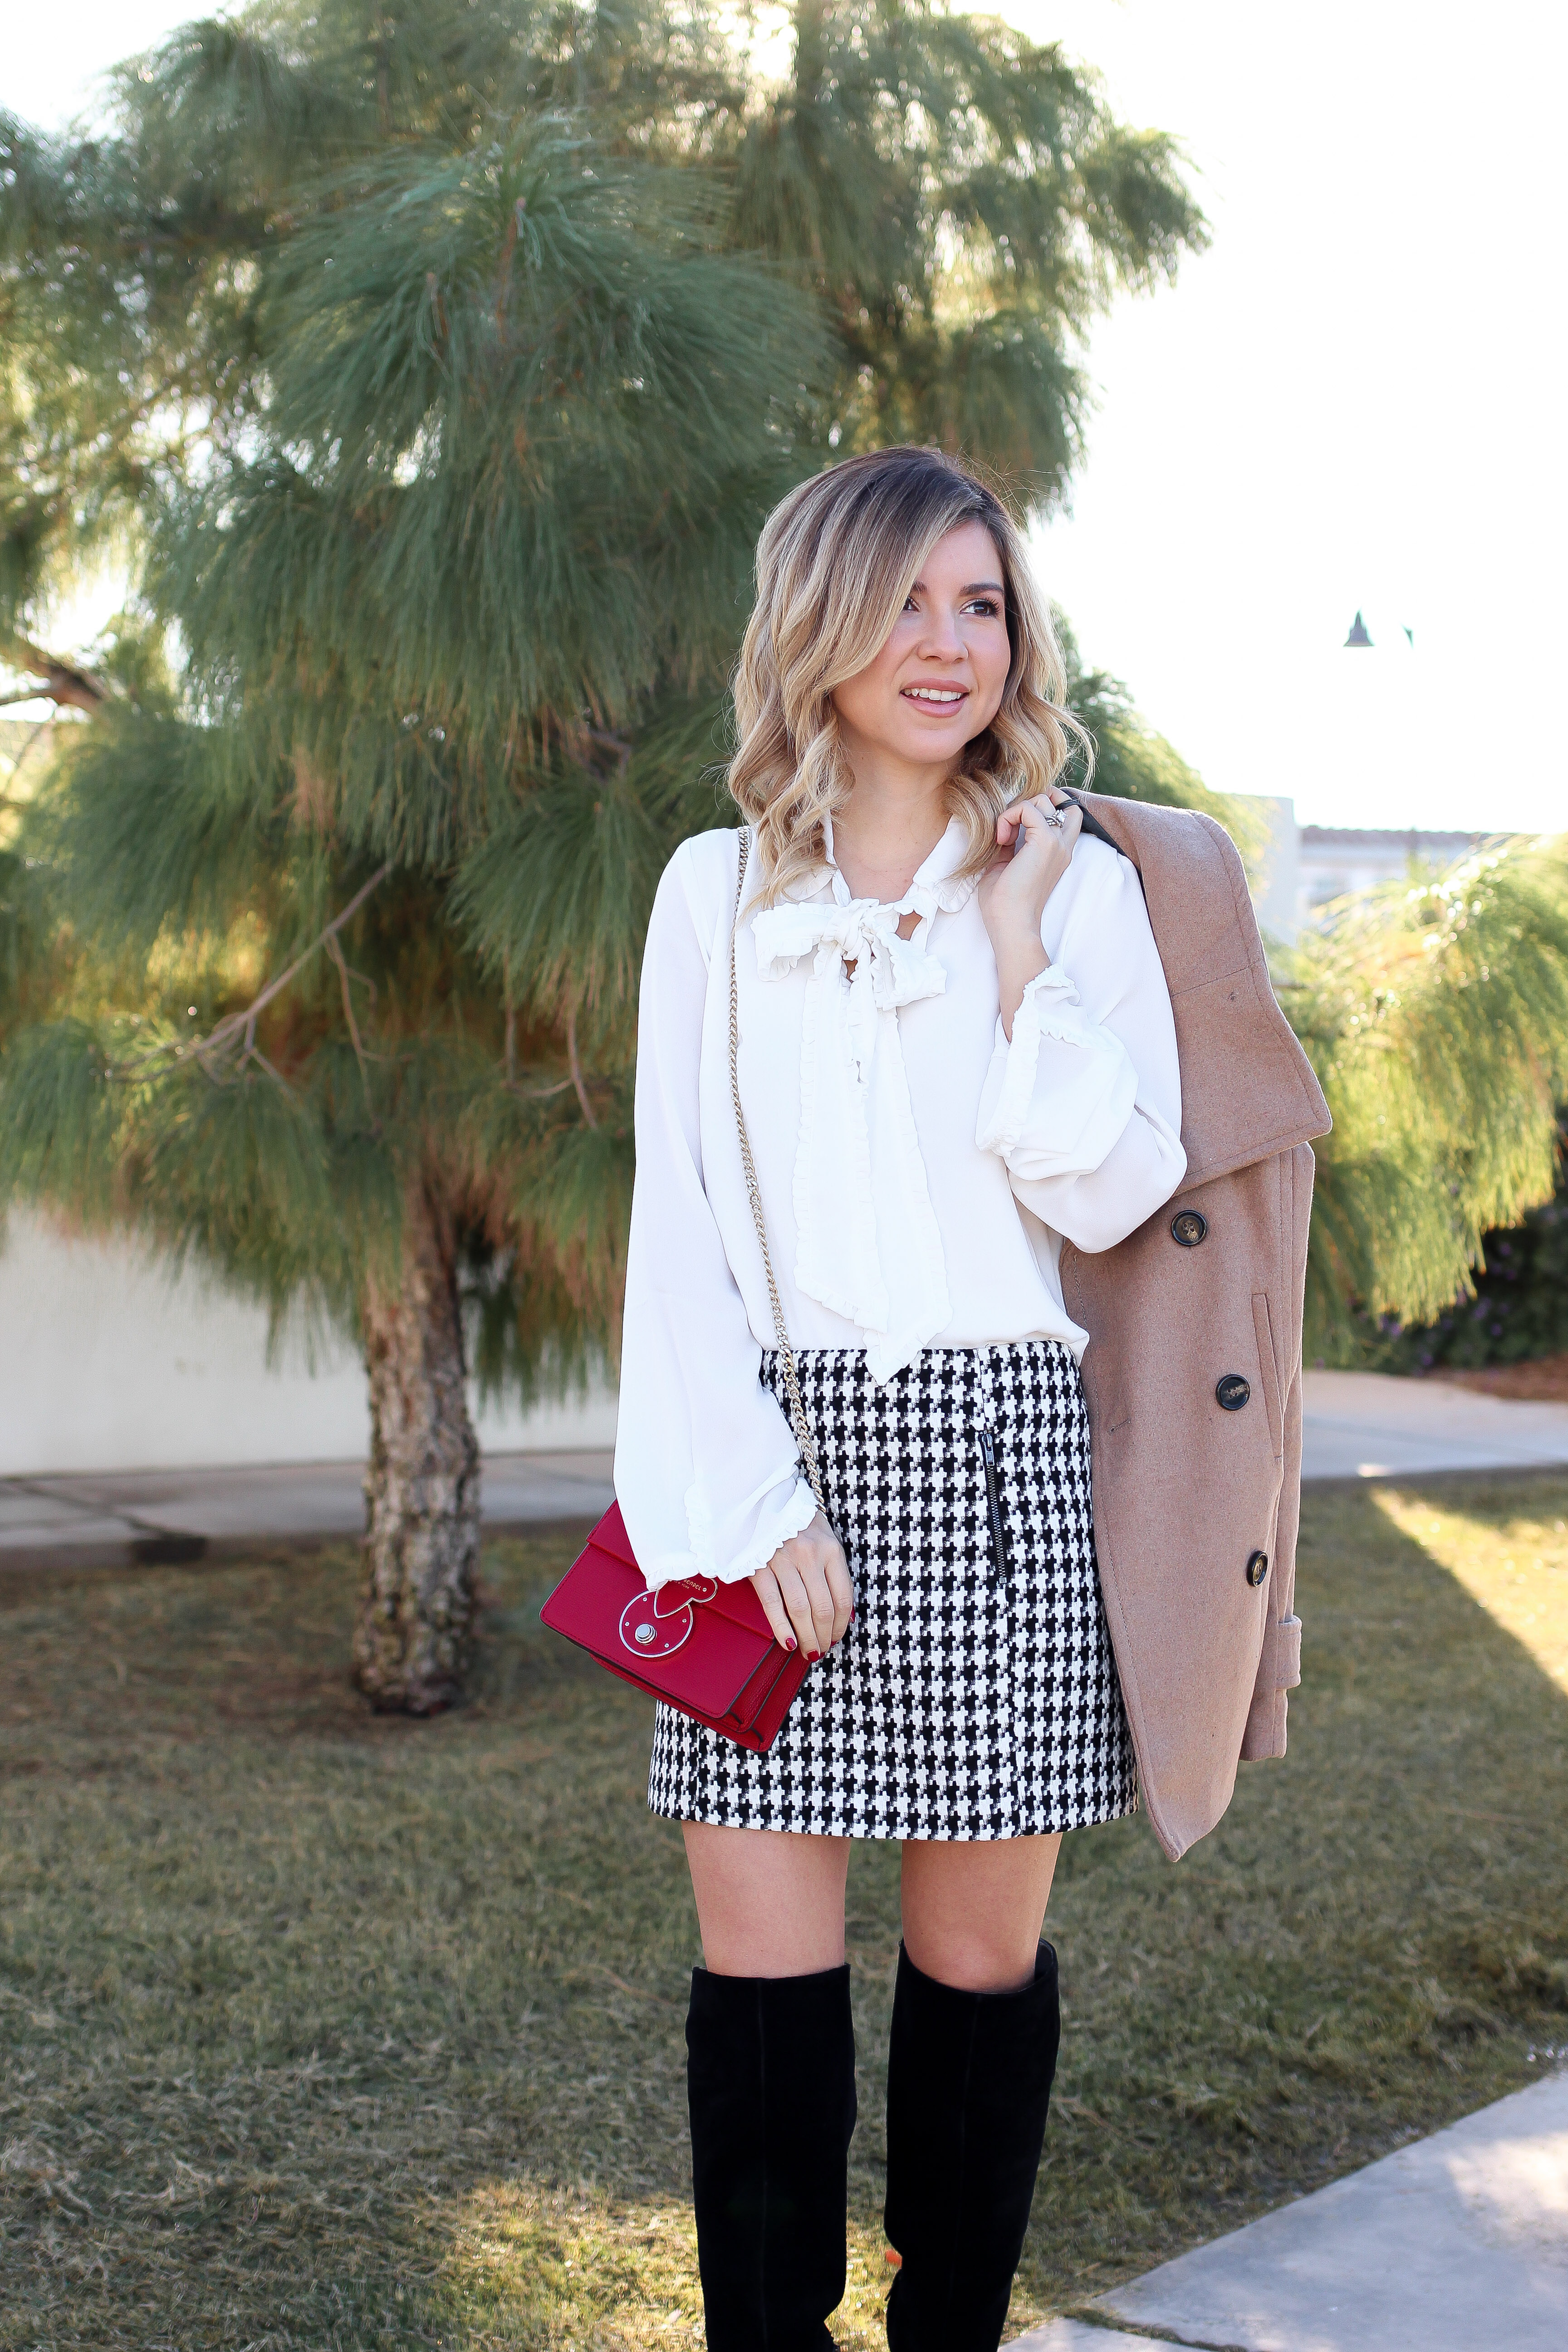 Simply Sutter - Ruffle Blouse - Houndstooth Skirt - Winter style